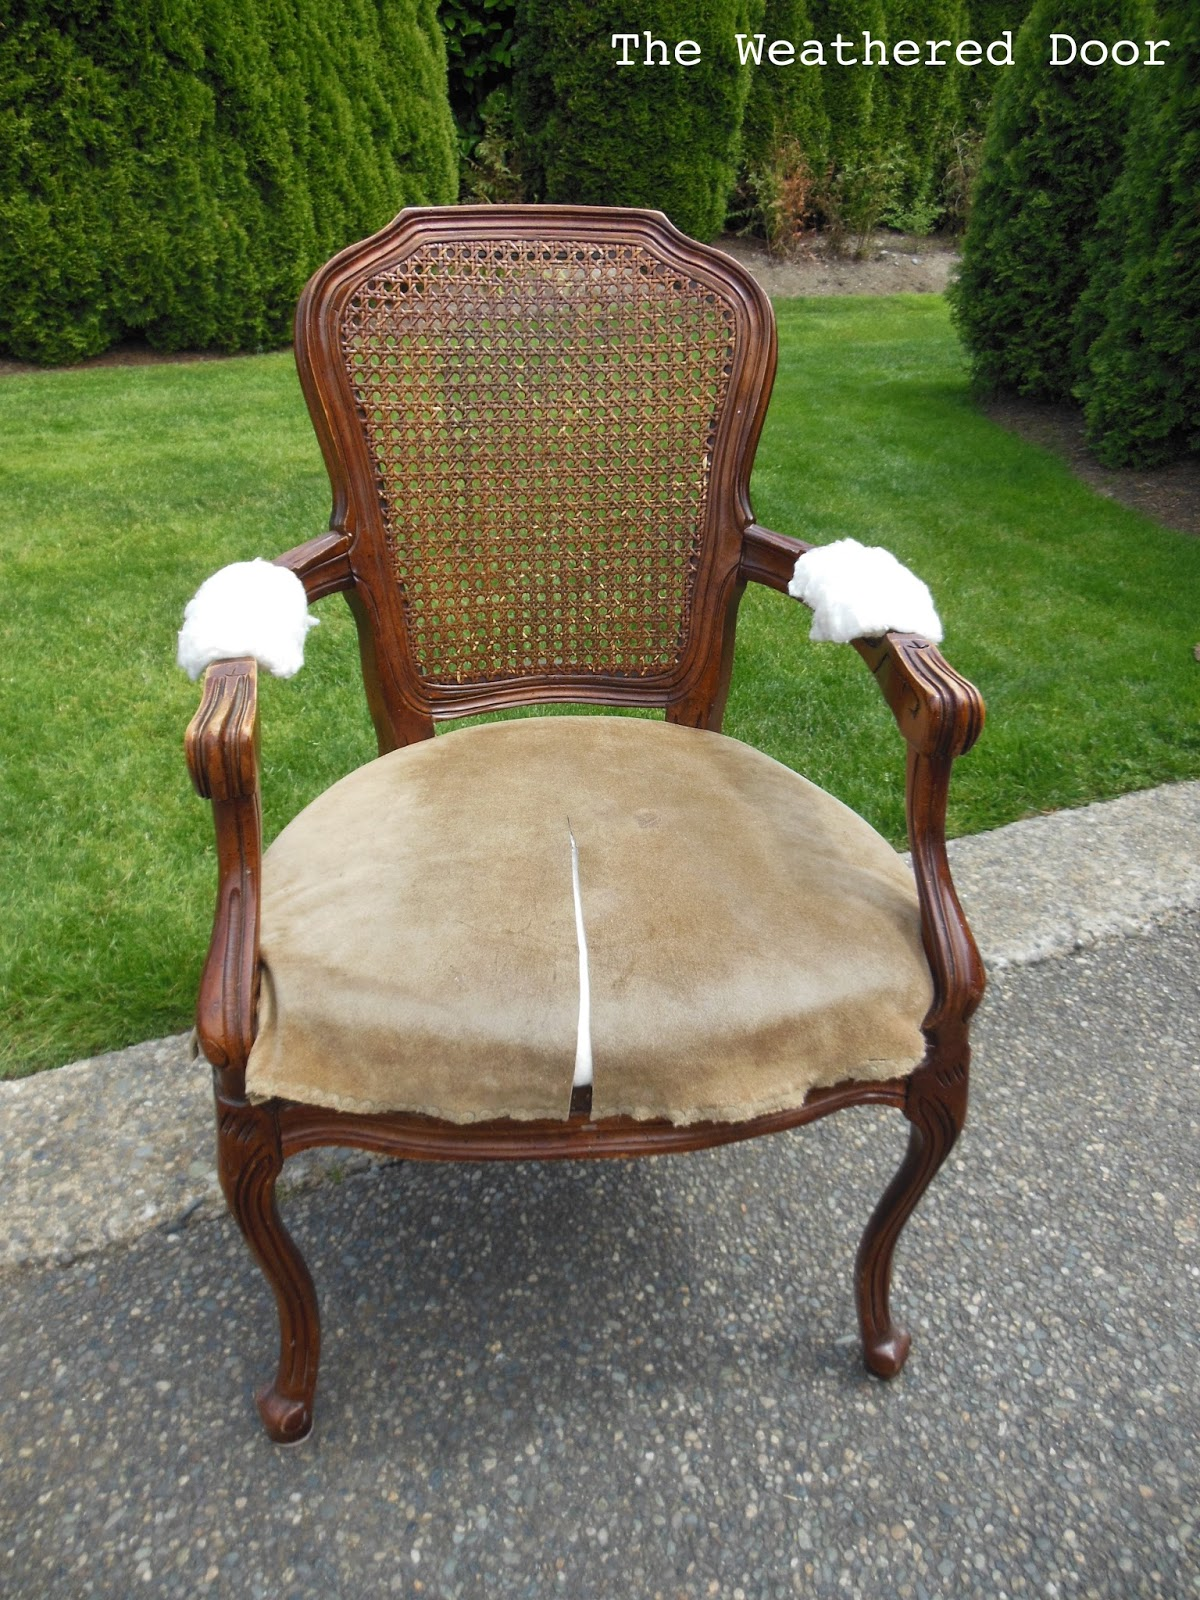 Where Can I Buy Cane For Chairs Poang Chair India French Back The Weathered Door